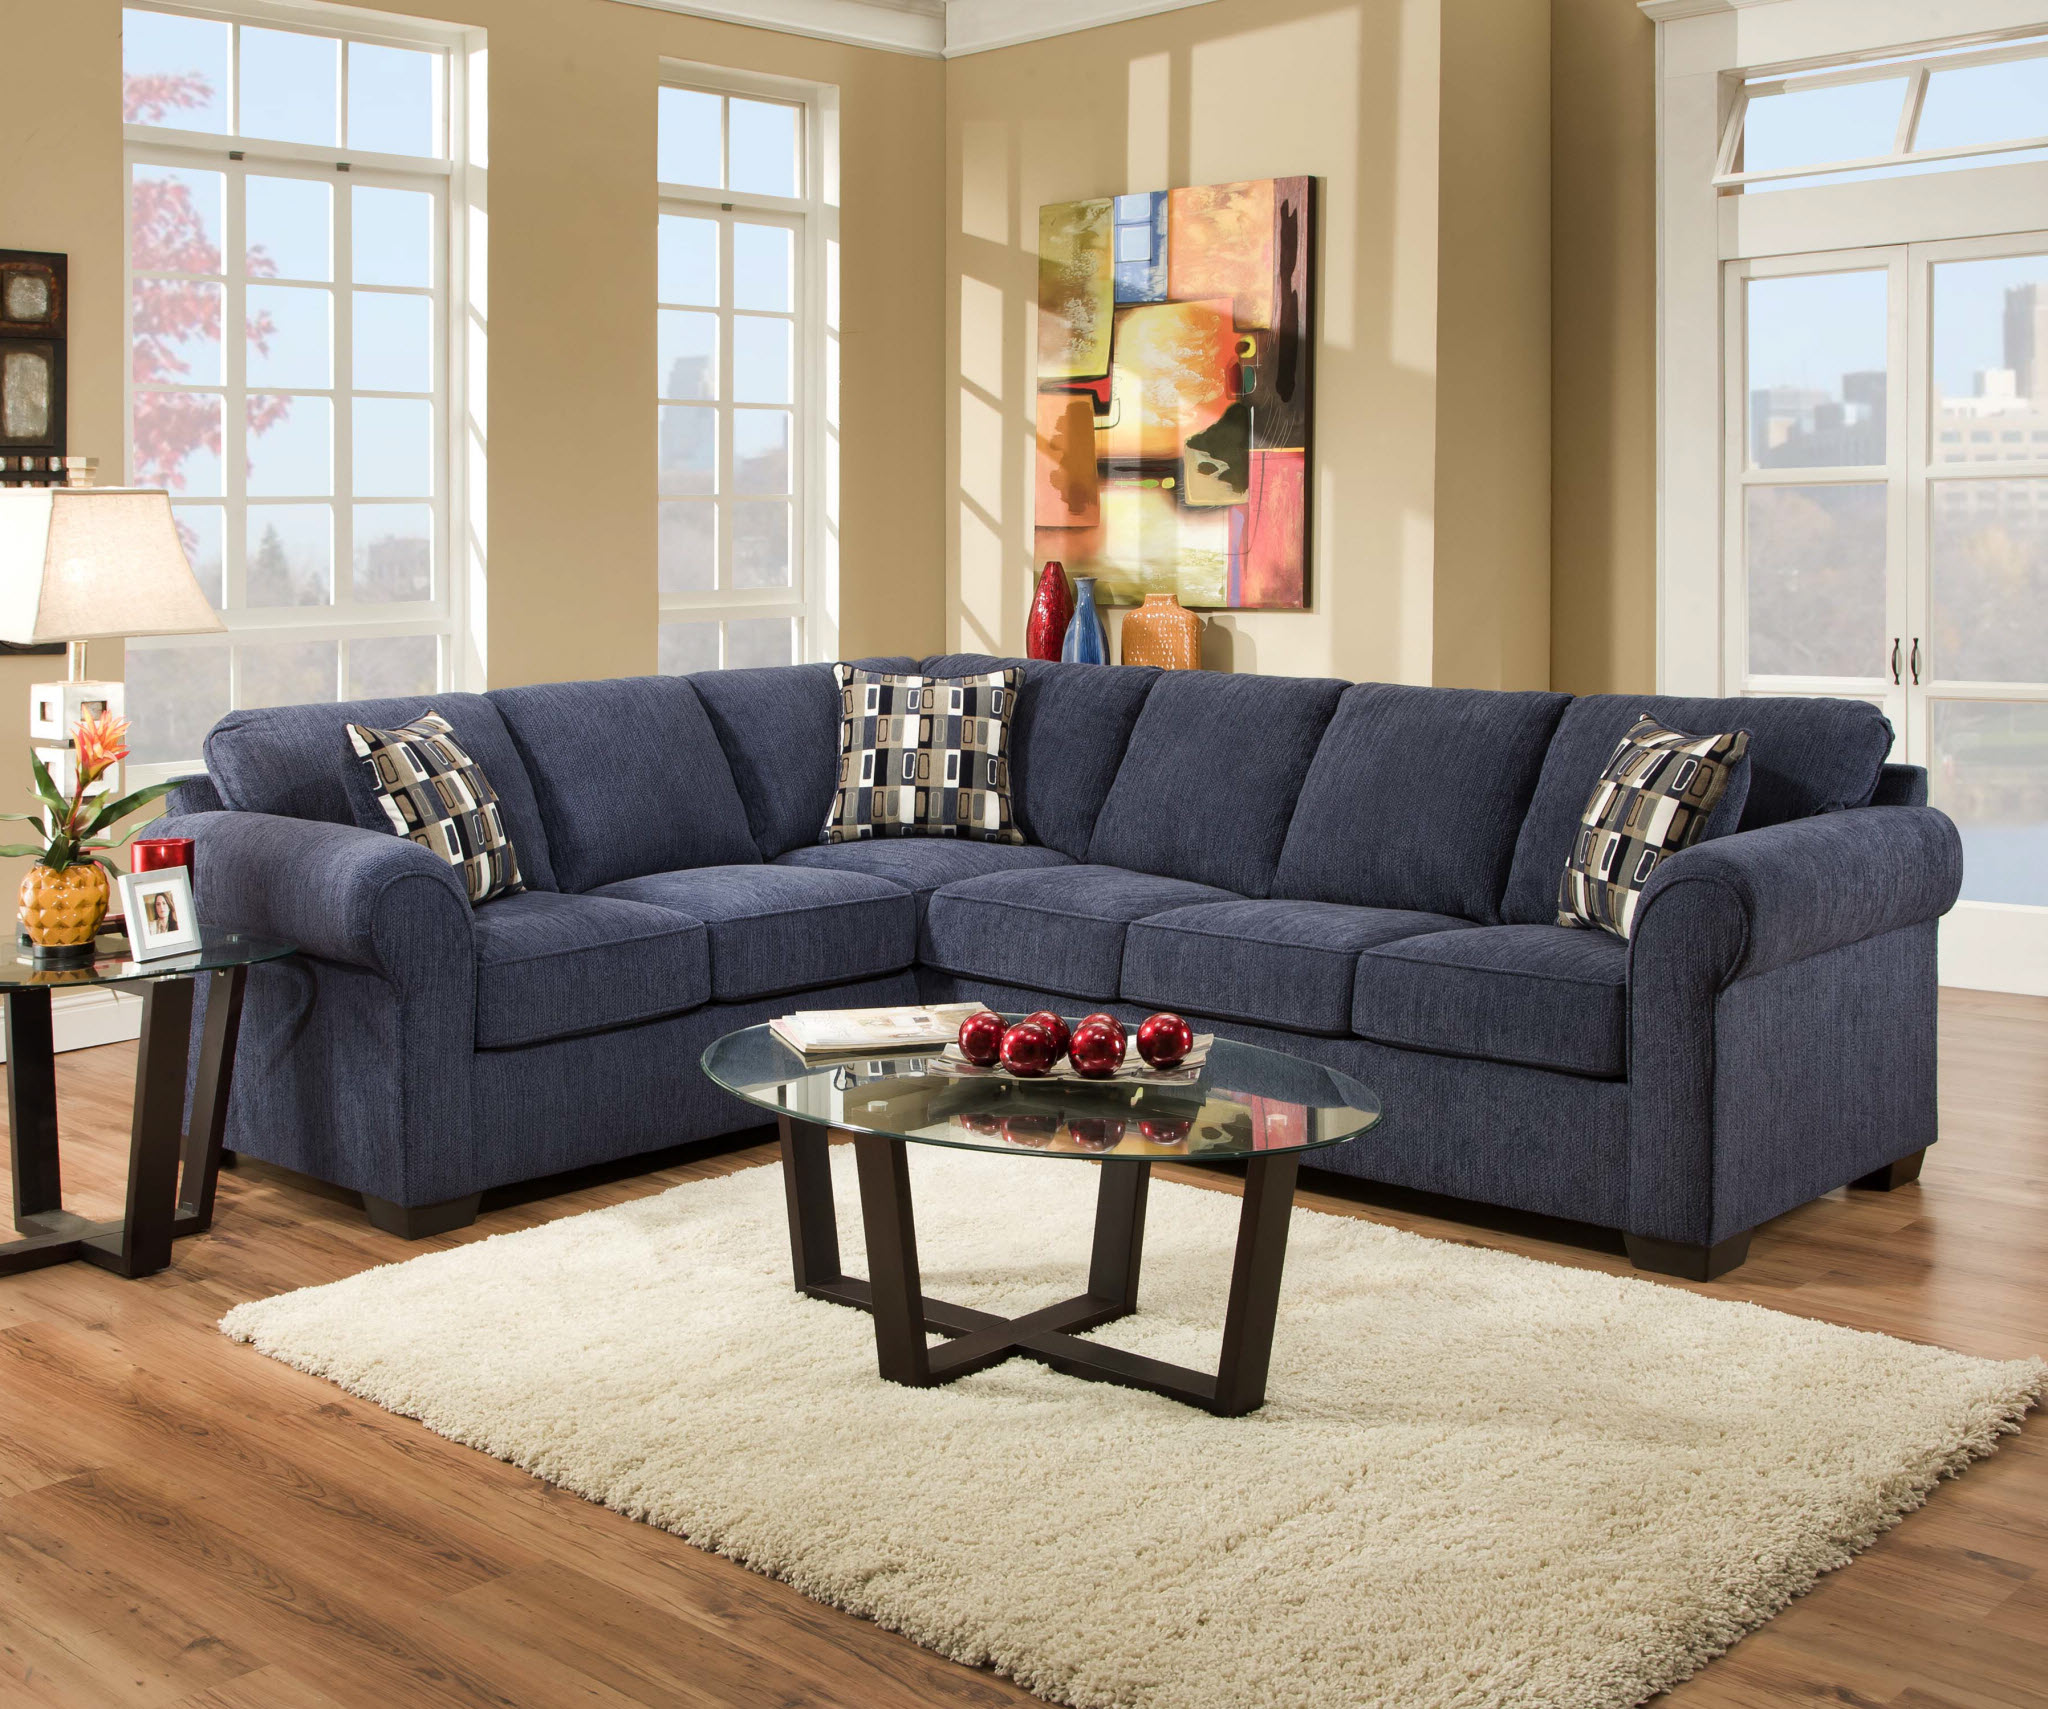 Design Couchtisch Leaf Oval Coffee Table Sets Decorating Ideas | Roy Home Design